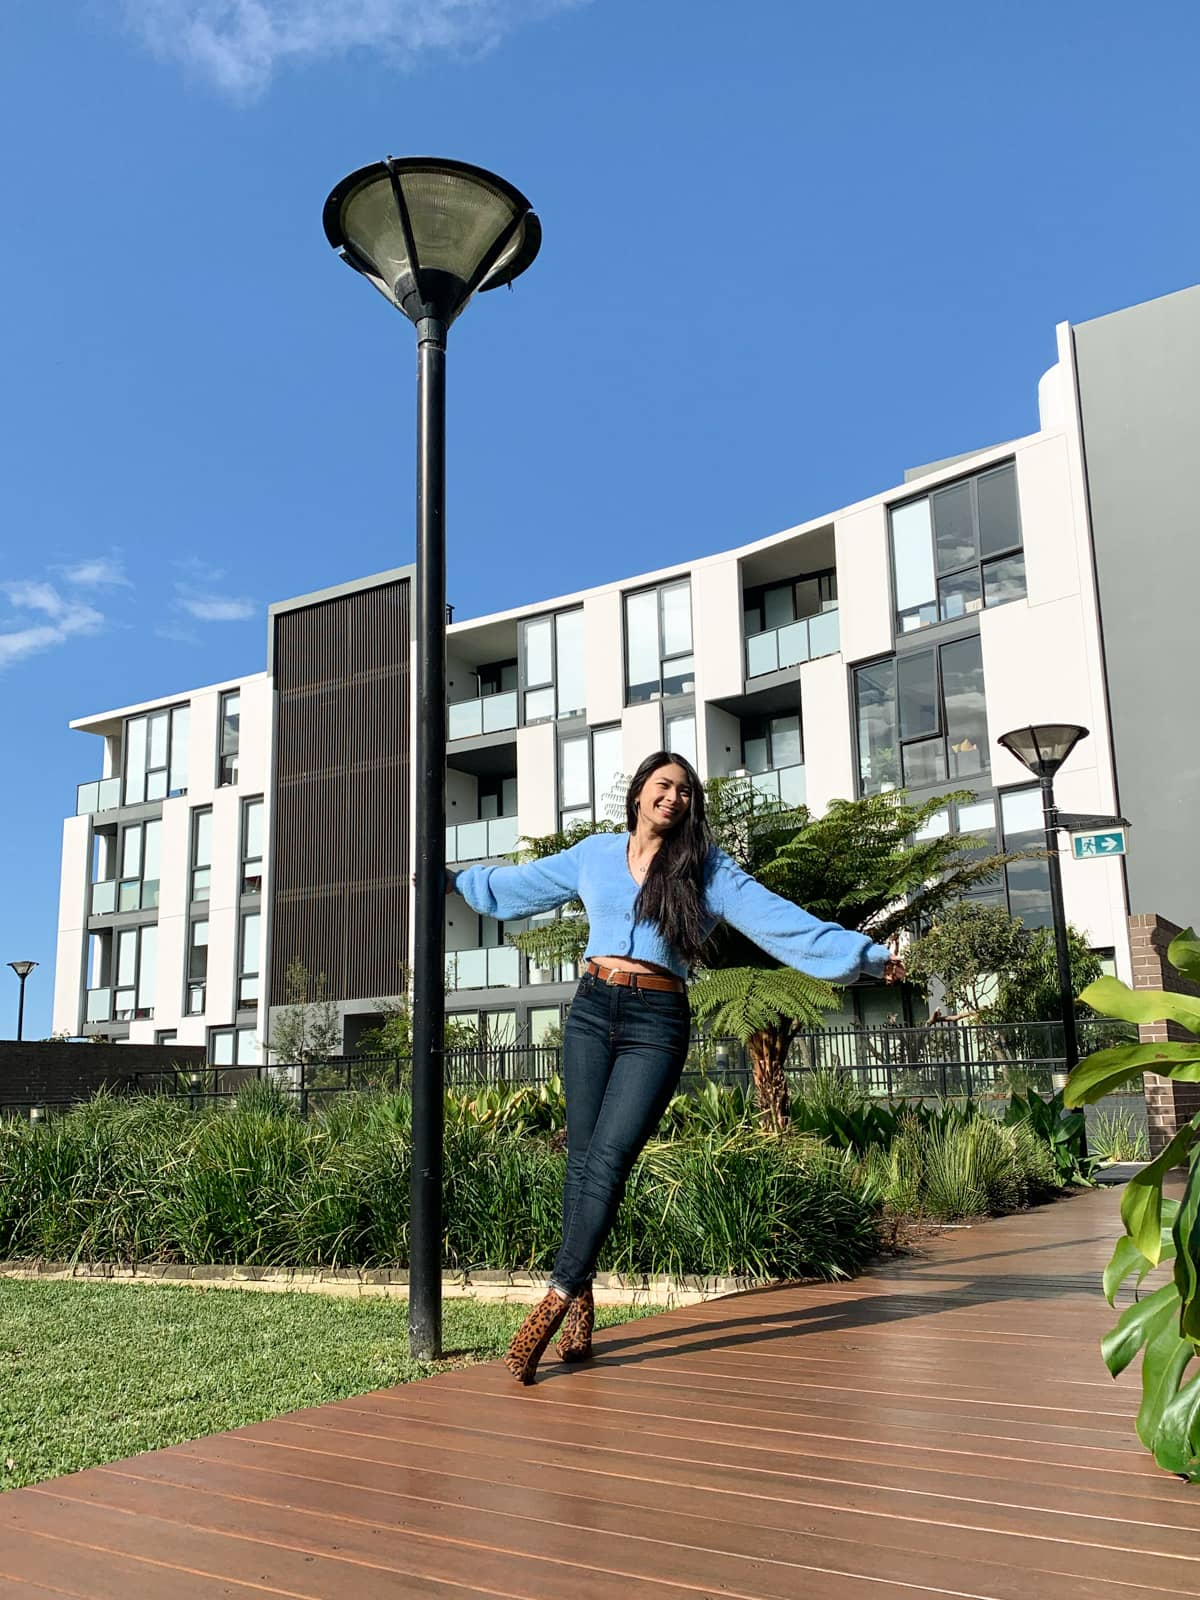 The same woman in the other photos on this page, in the same outfit. She is holding onto a lamppost and stretching out to the opposite side, with her ankles crossed. She is standing on a wooden boardwalk. In the background is an apartment building and the sky is blue like her cardigan.